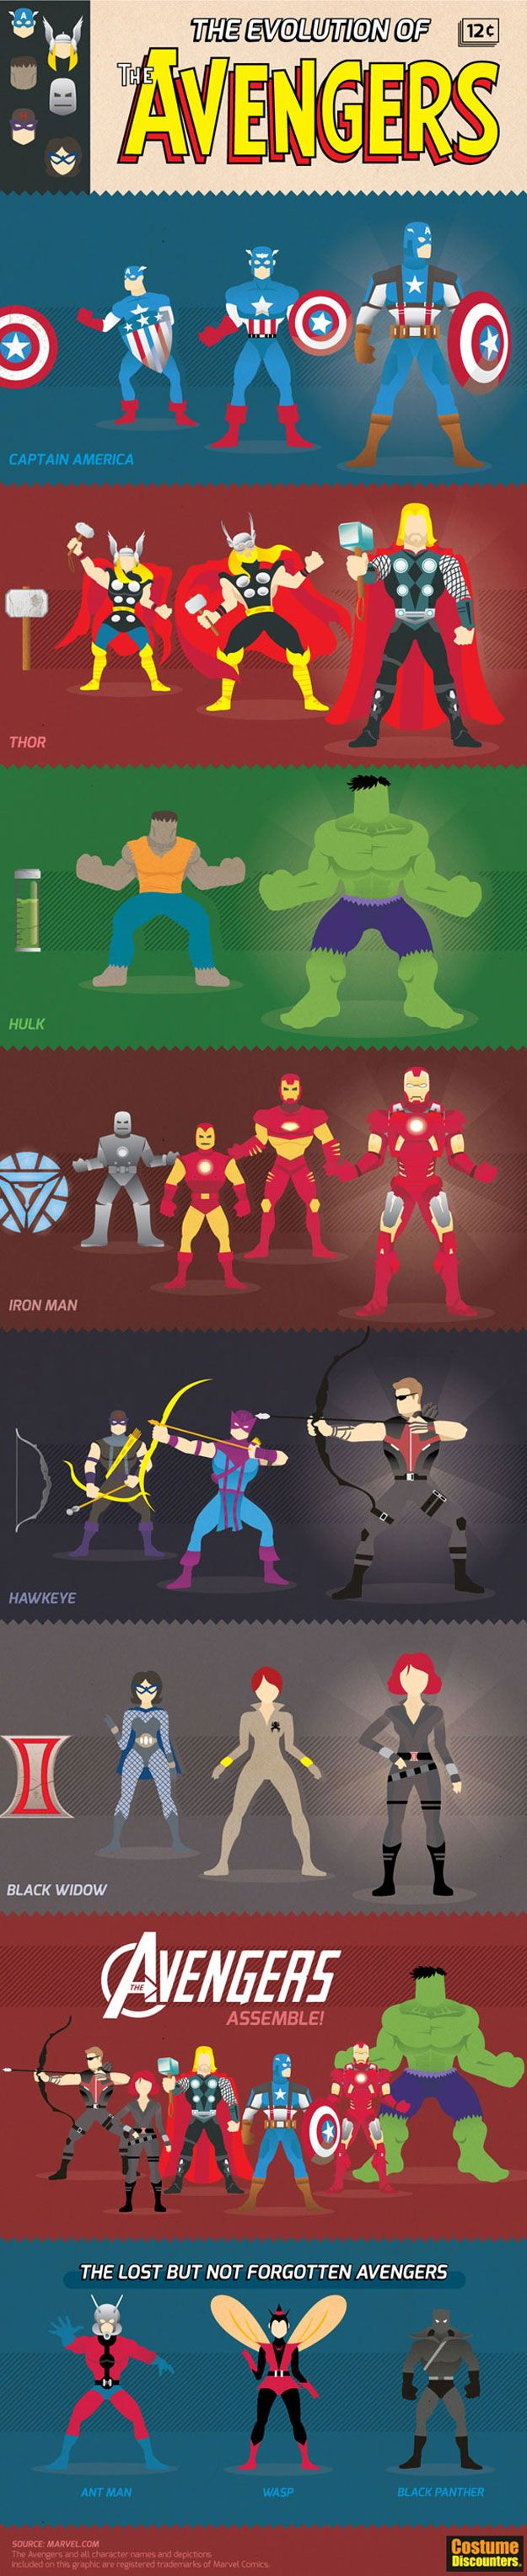 The Evolution Of The Avengers [Infographic]    I really want to see Ant-man and Wasp. So sad they aren'y in the Avengers yet.